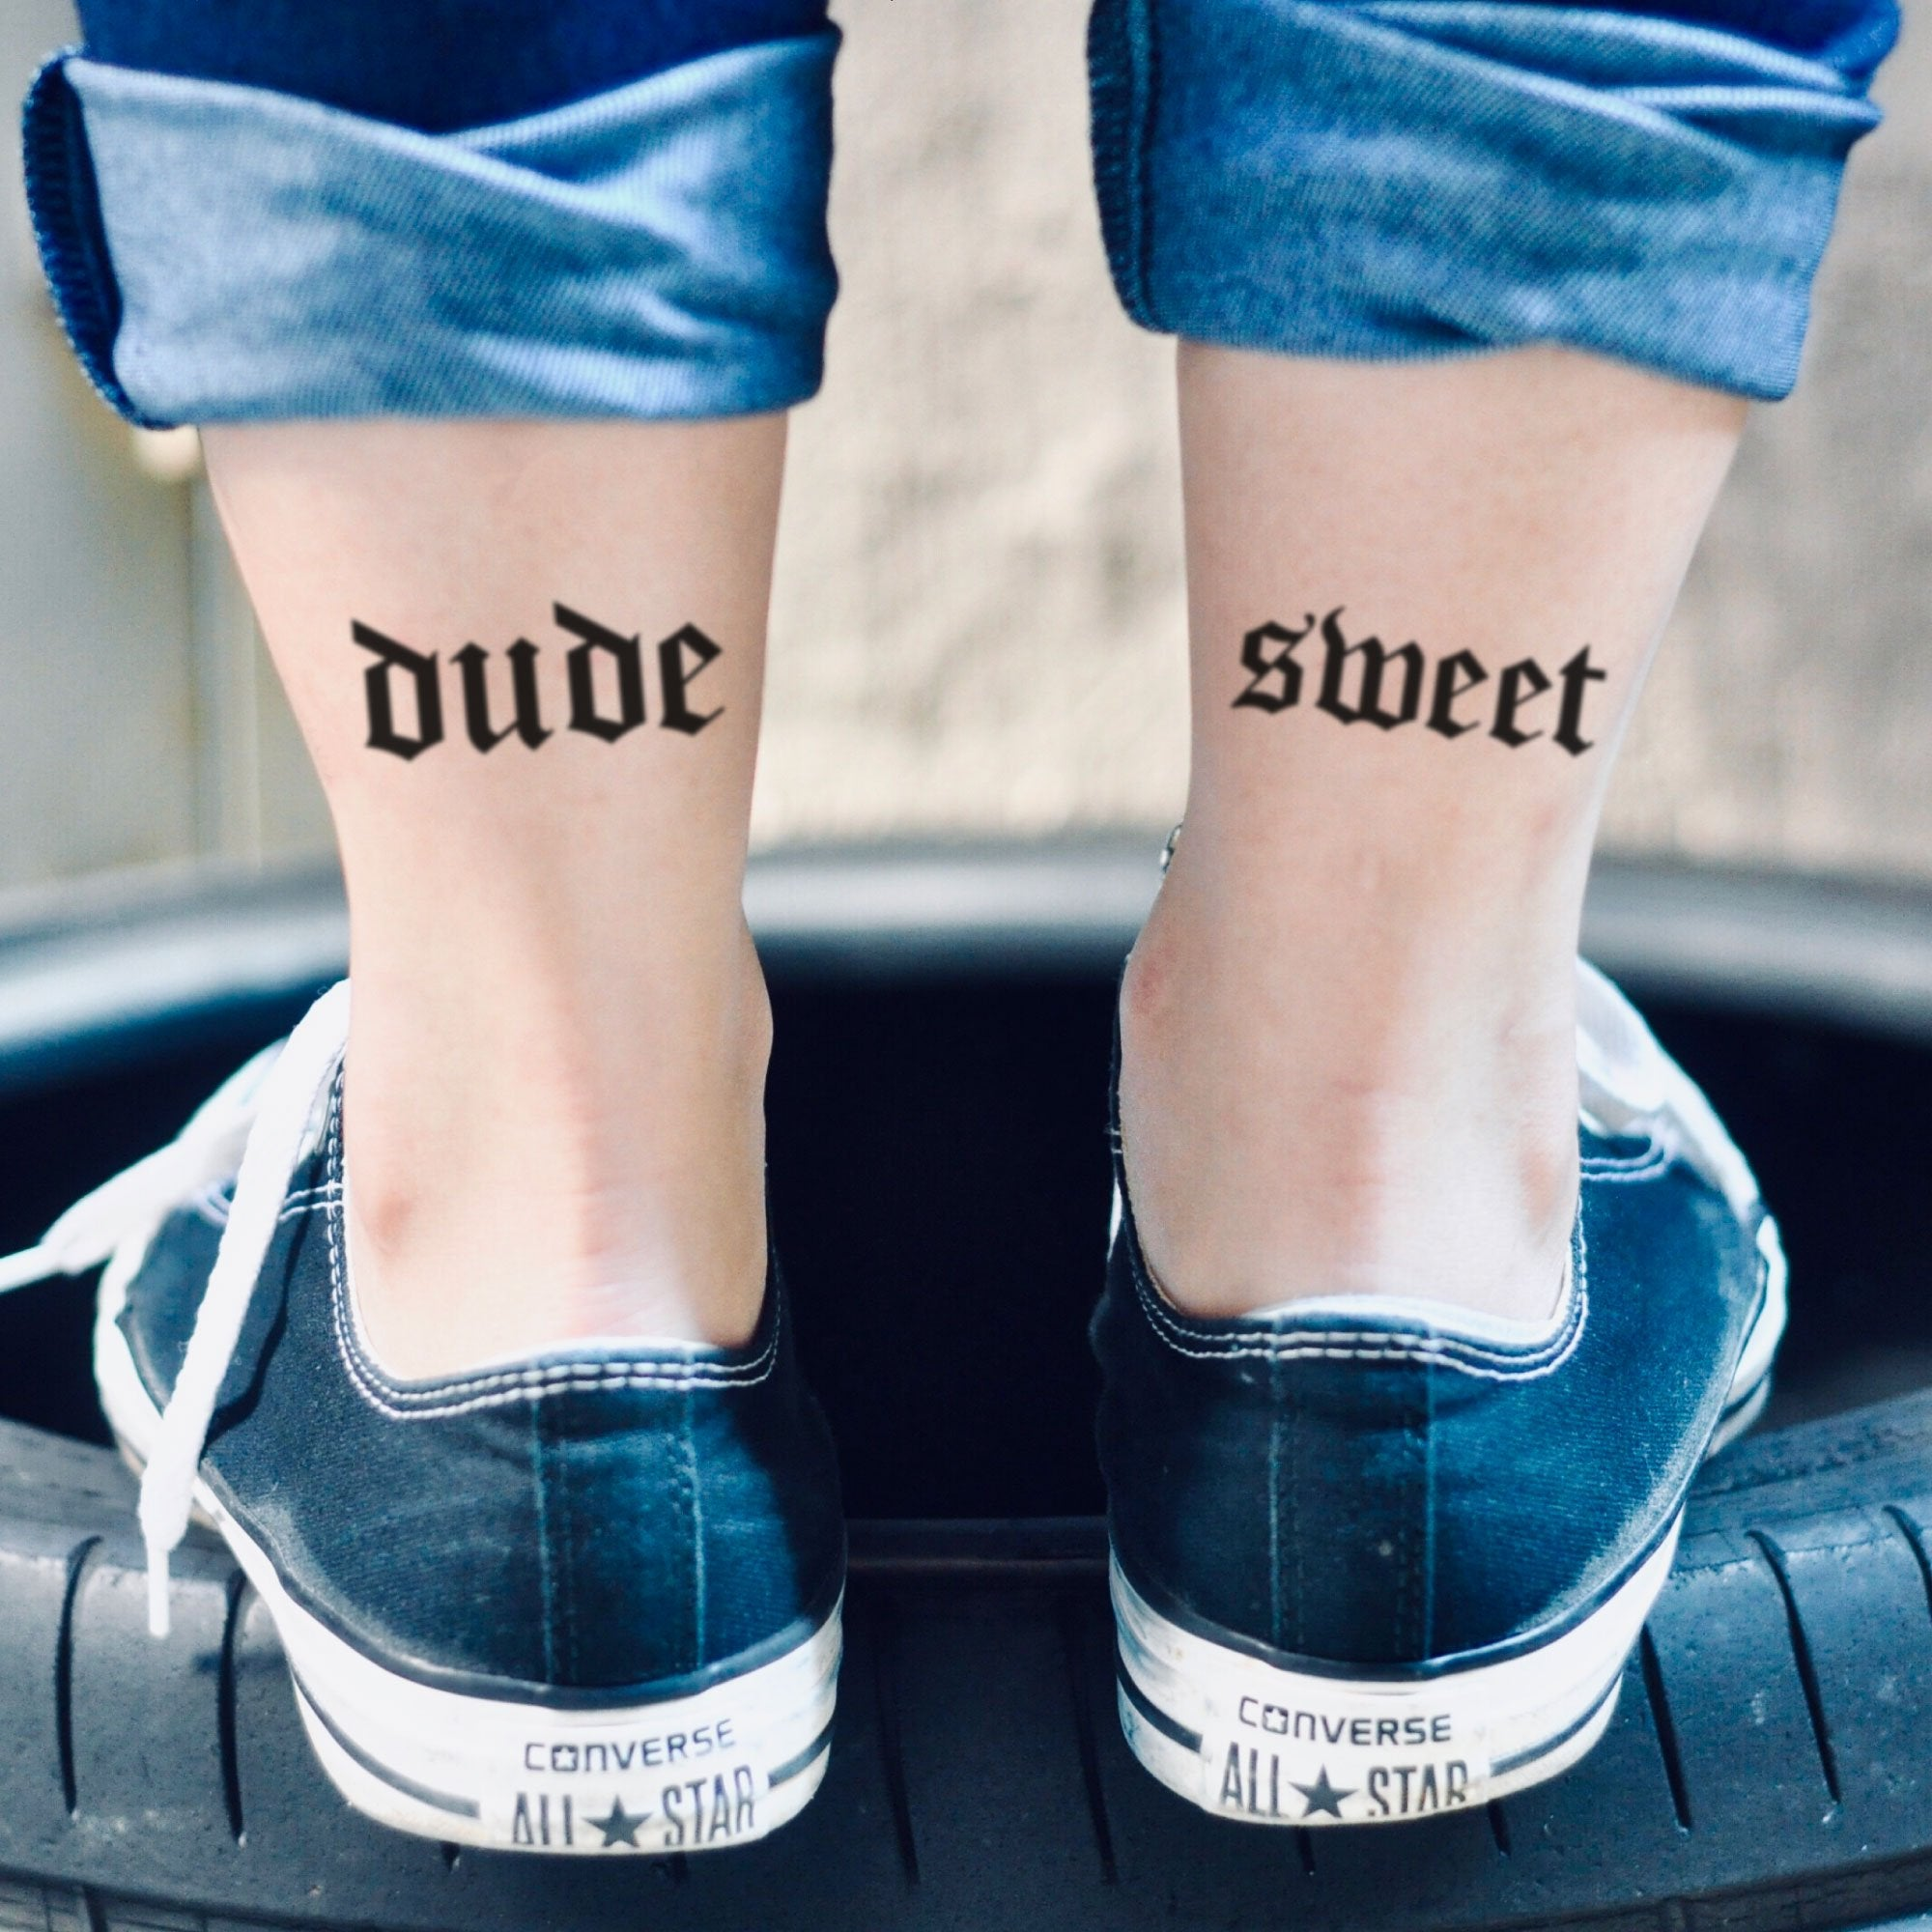 Dude Sweet Wheres My Car Temporary Tattoo Sticker Set Of 2